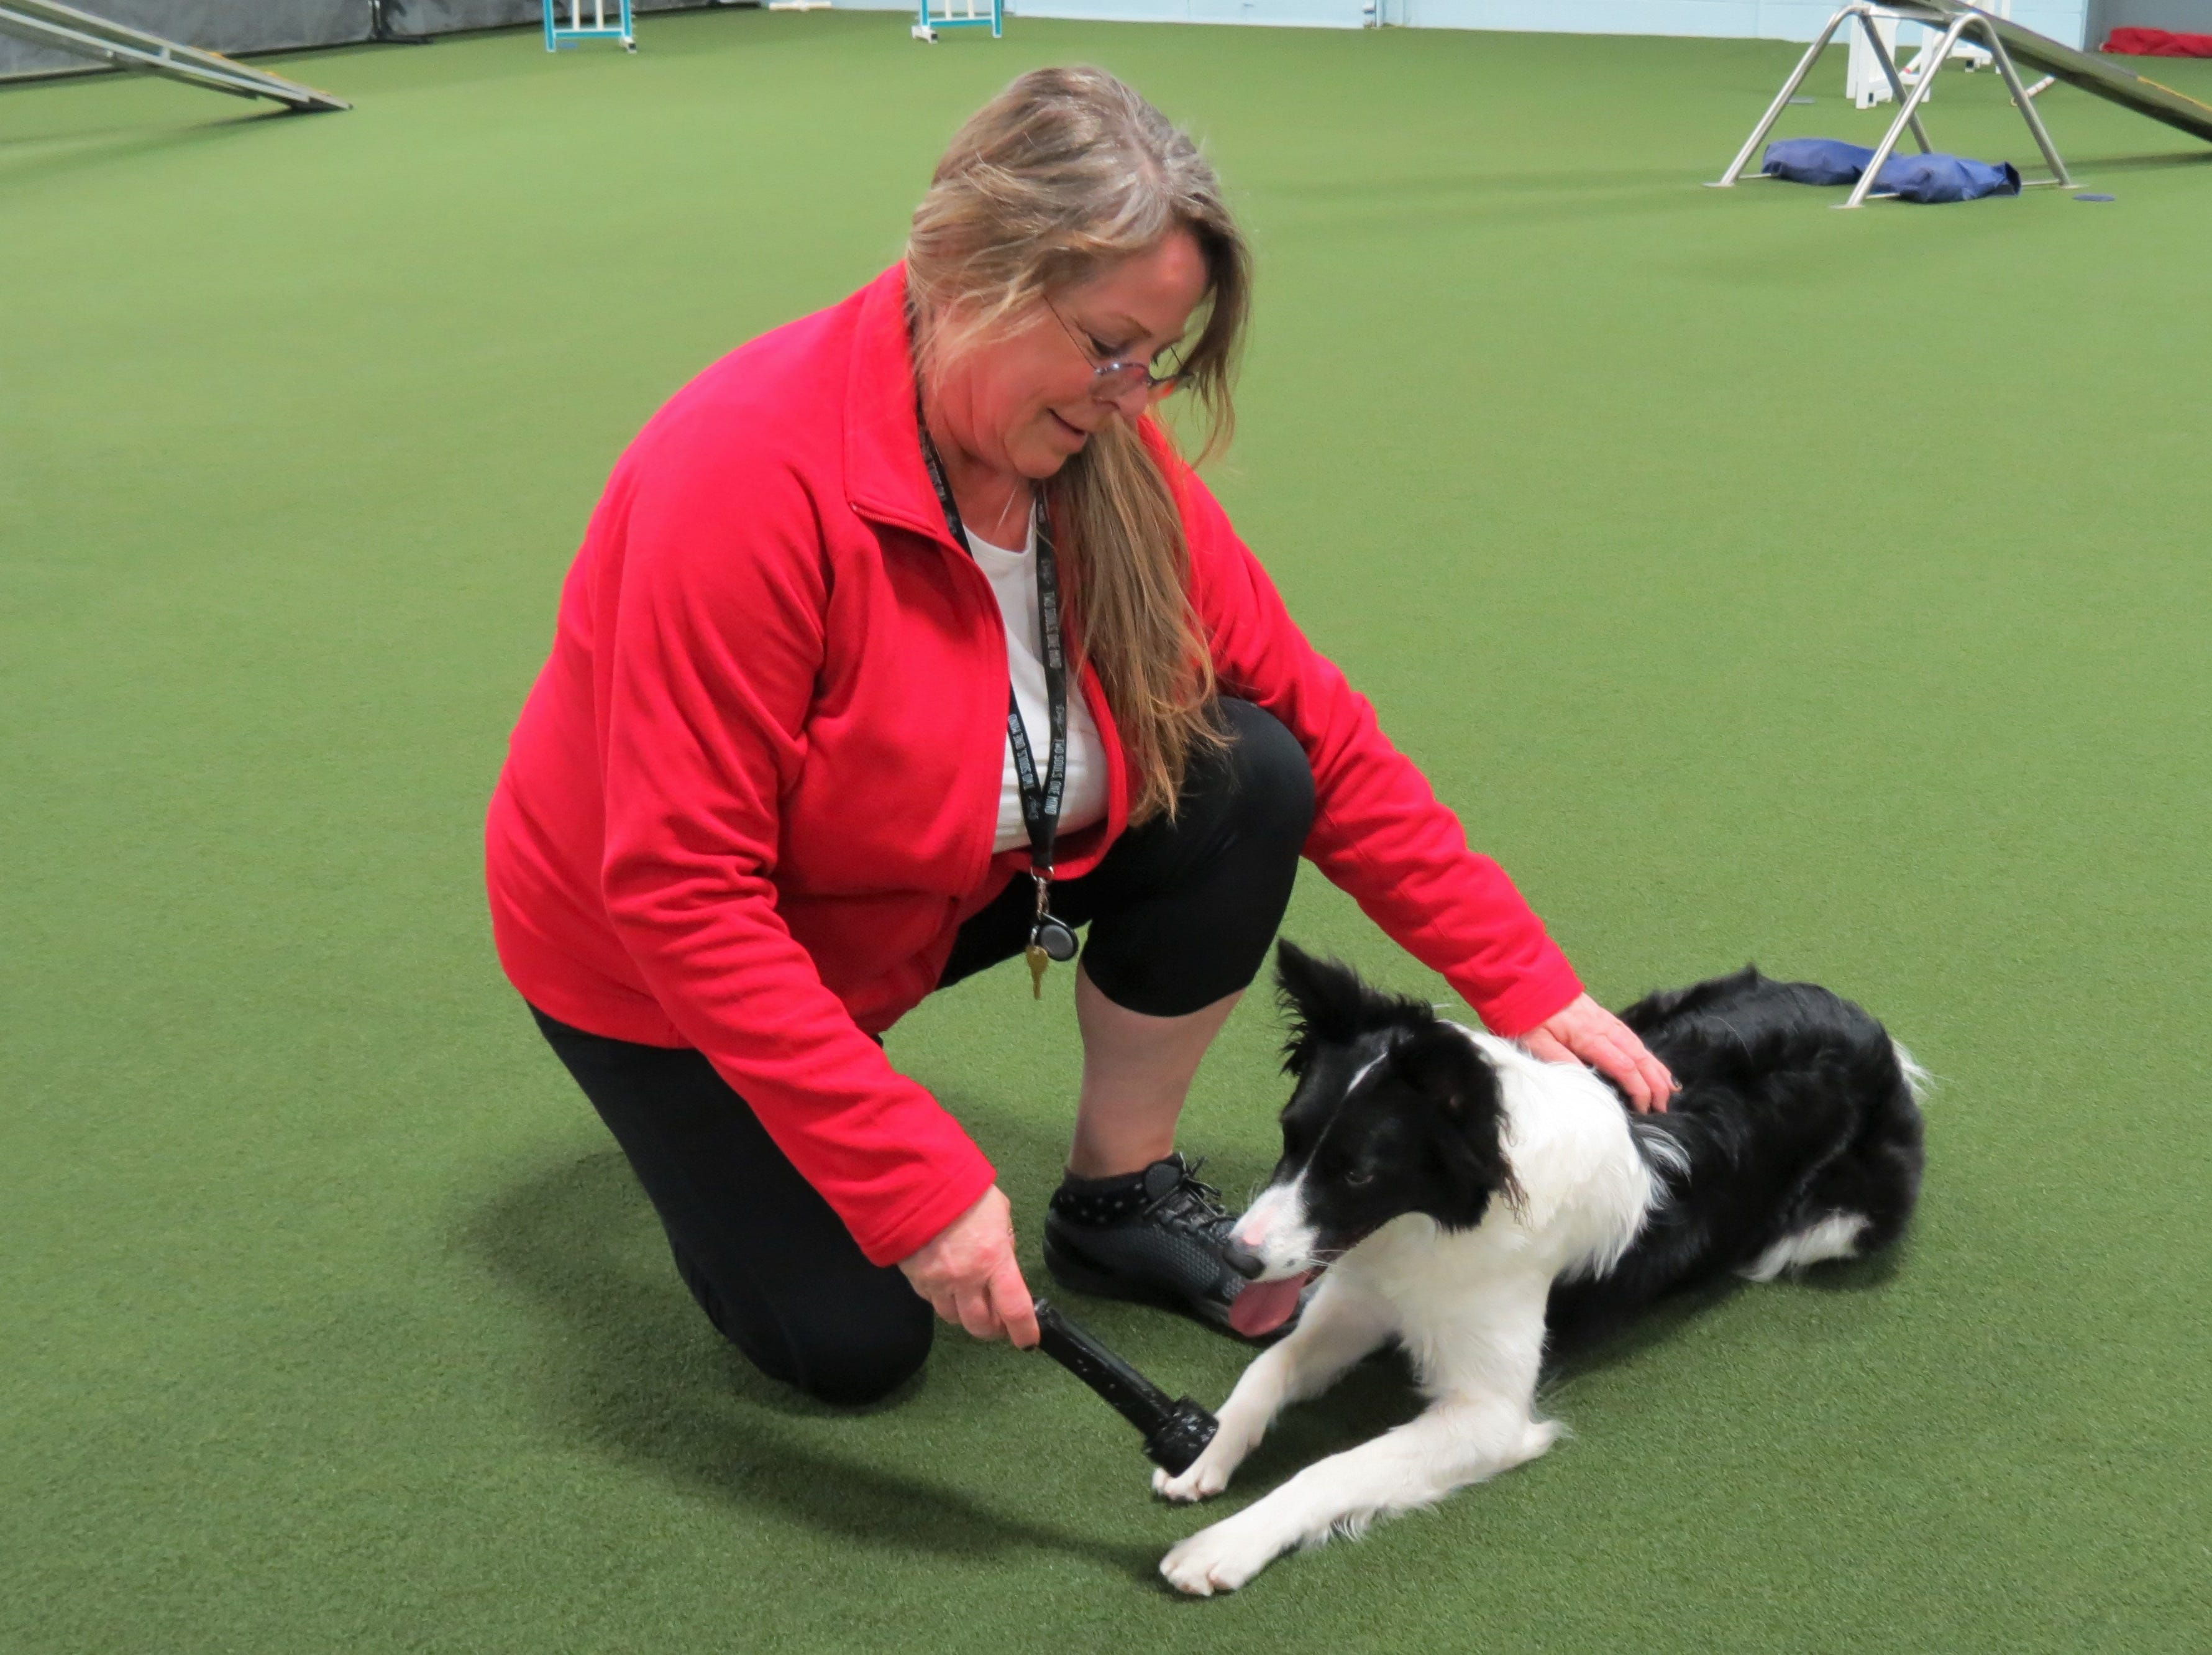 D. Lynne Luckow and her border collie Power.